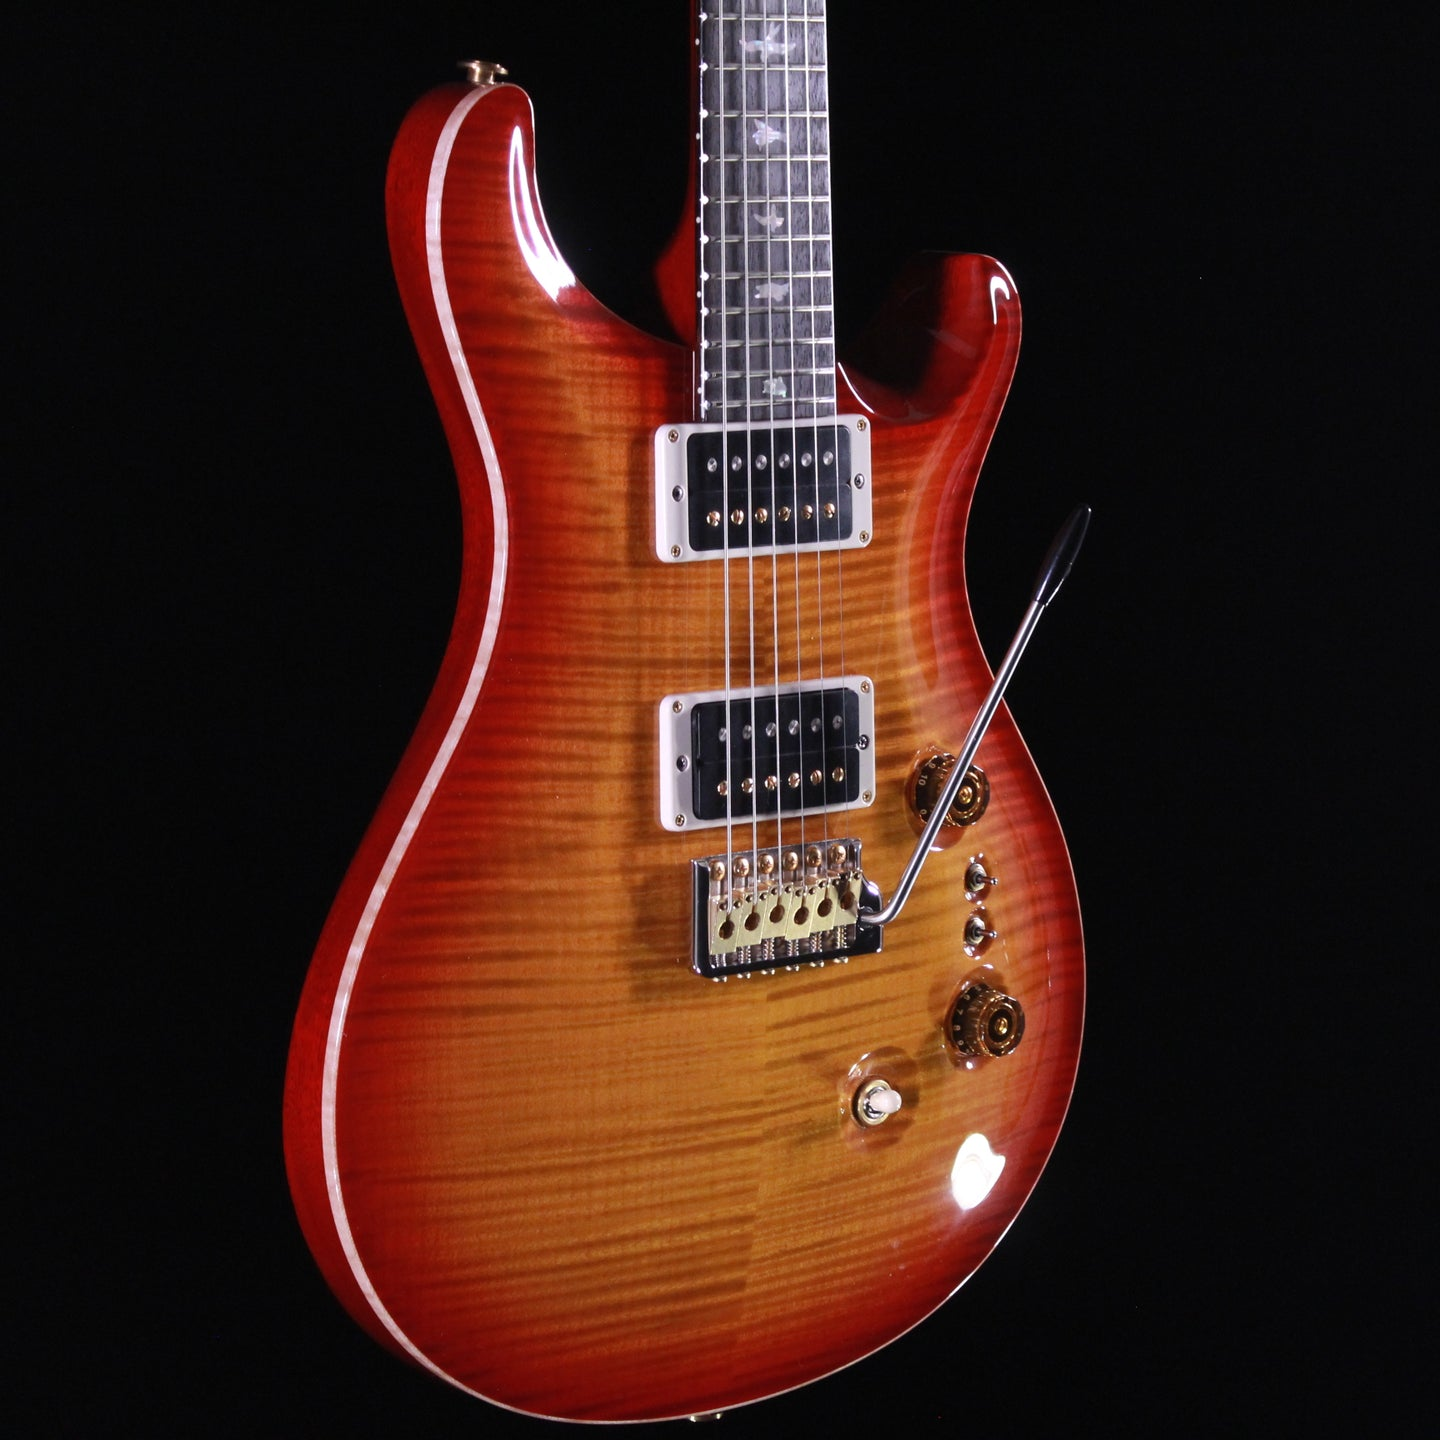 PRS 35th Anniversary Custom 24 - Express Shipping - (PRS-0898) Serial: 20 0292475 - PLEK'd